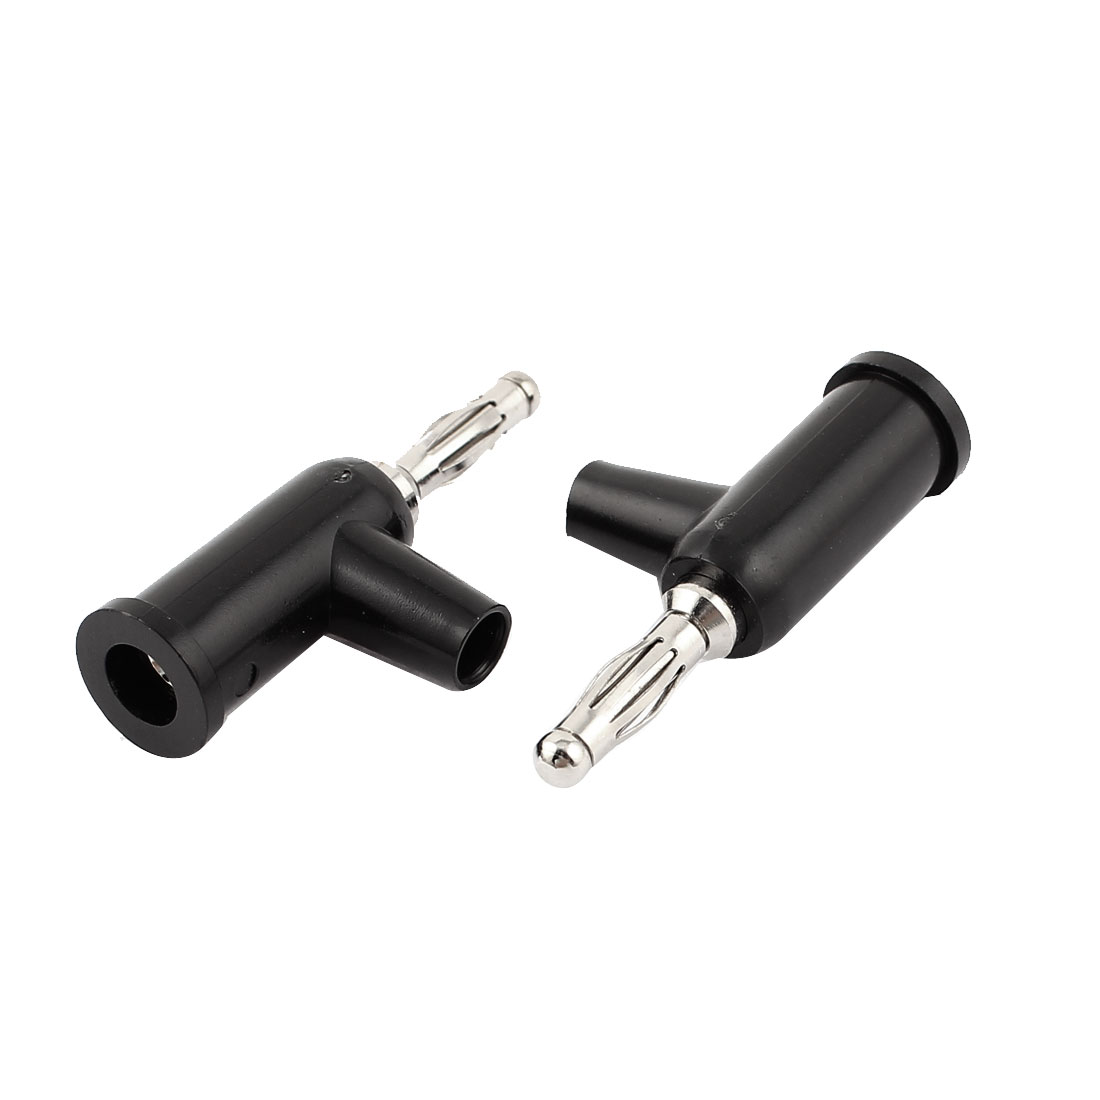 Audio Speaker Wire Cable T-Shape Banana Jack Socket Connector Black 2pcs